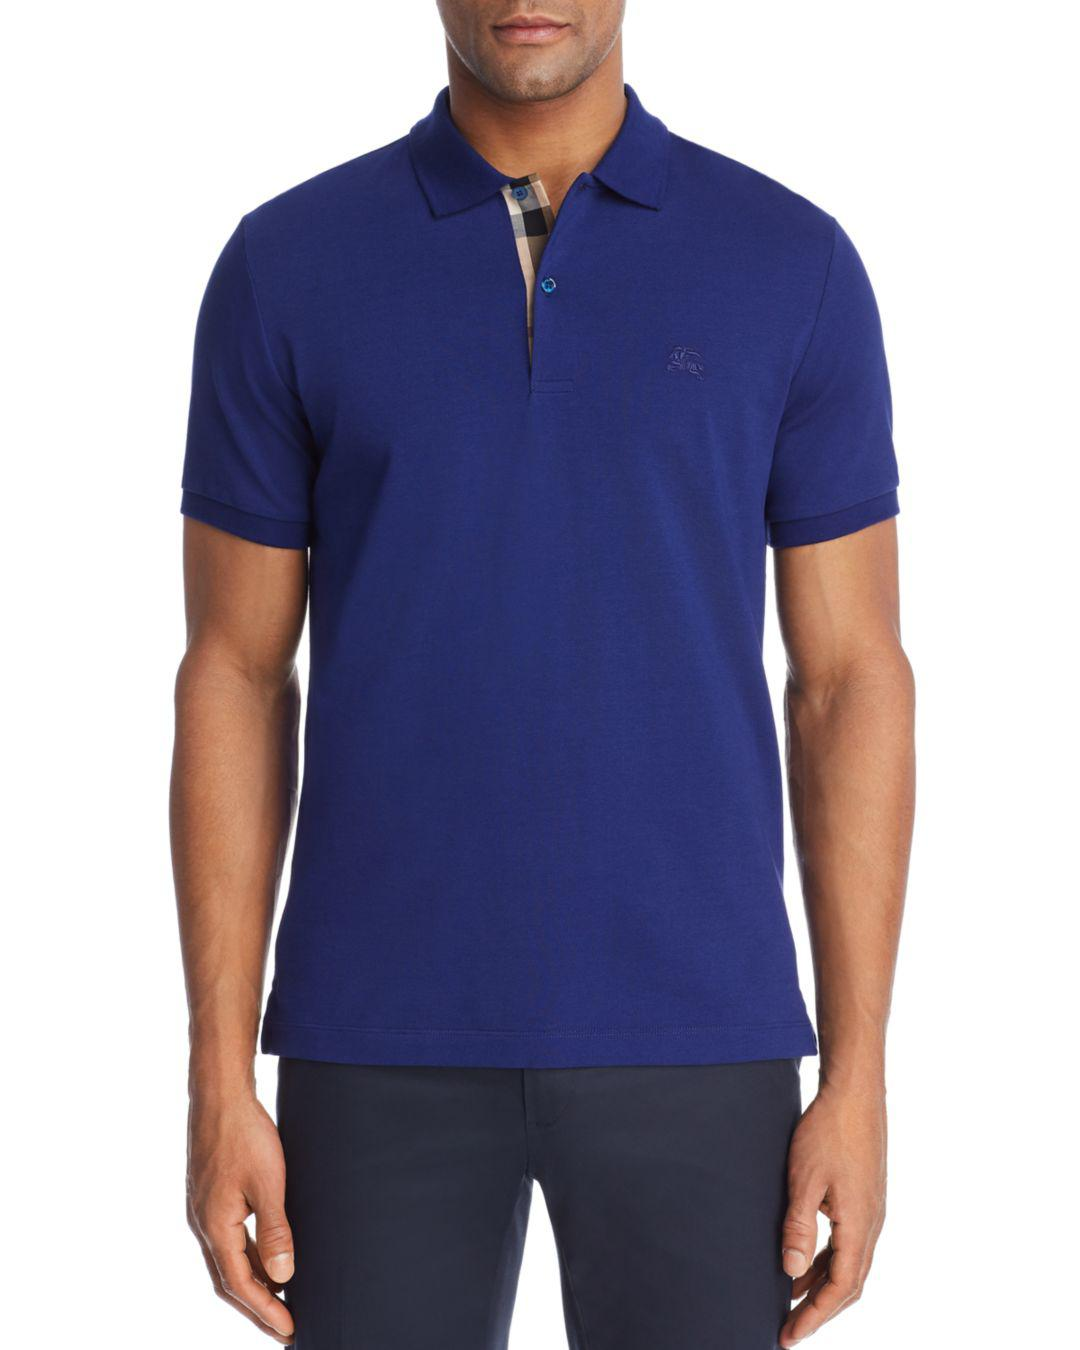 7b0f77fc6 Lyst - Burberry Regular Fit Polo Shirt in Blue for Men